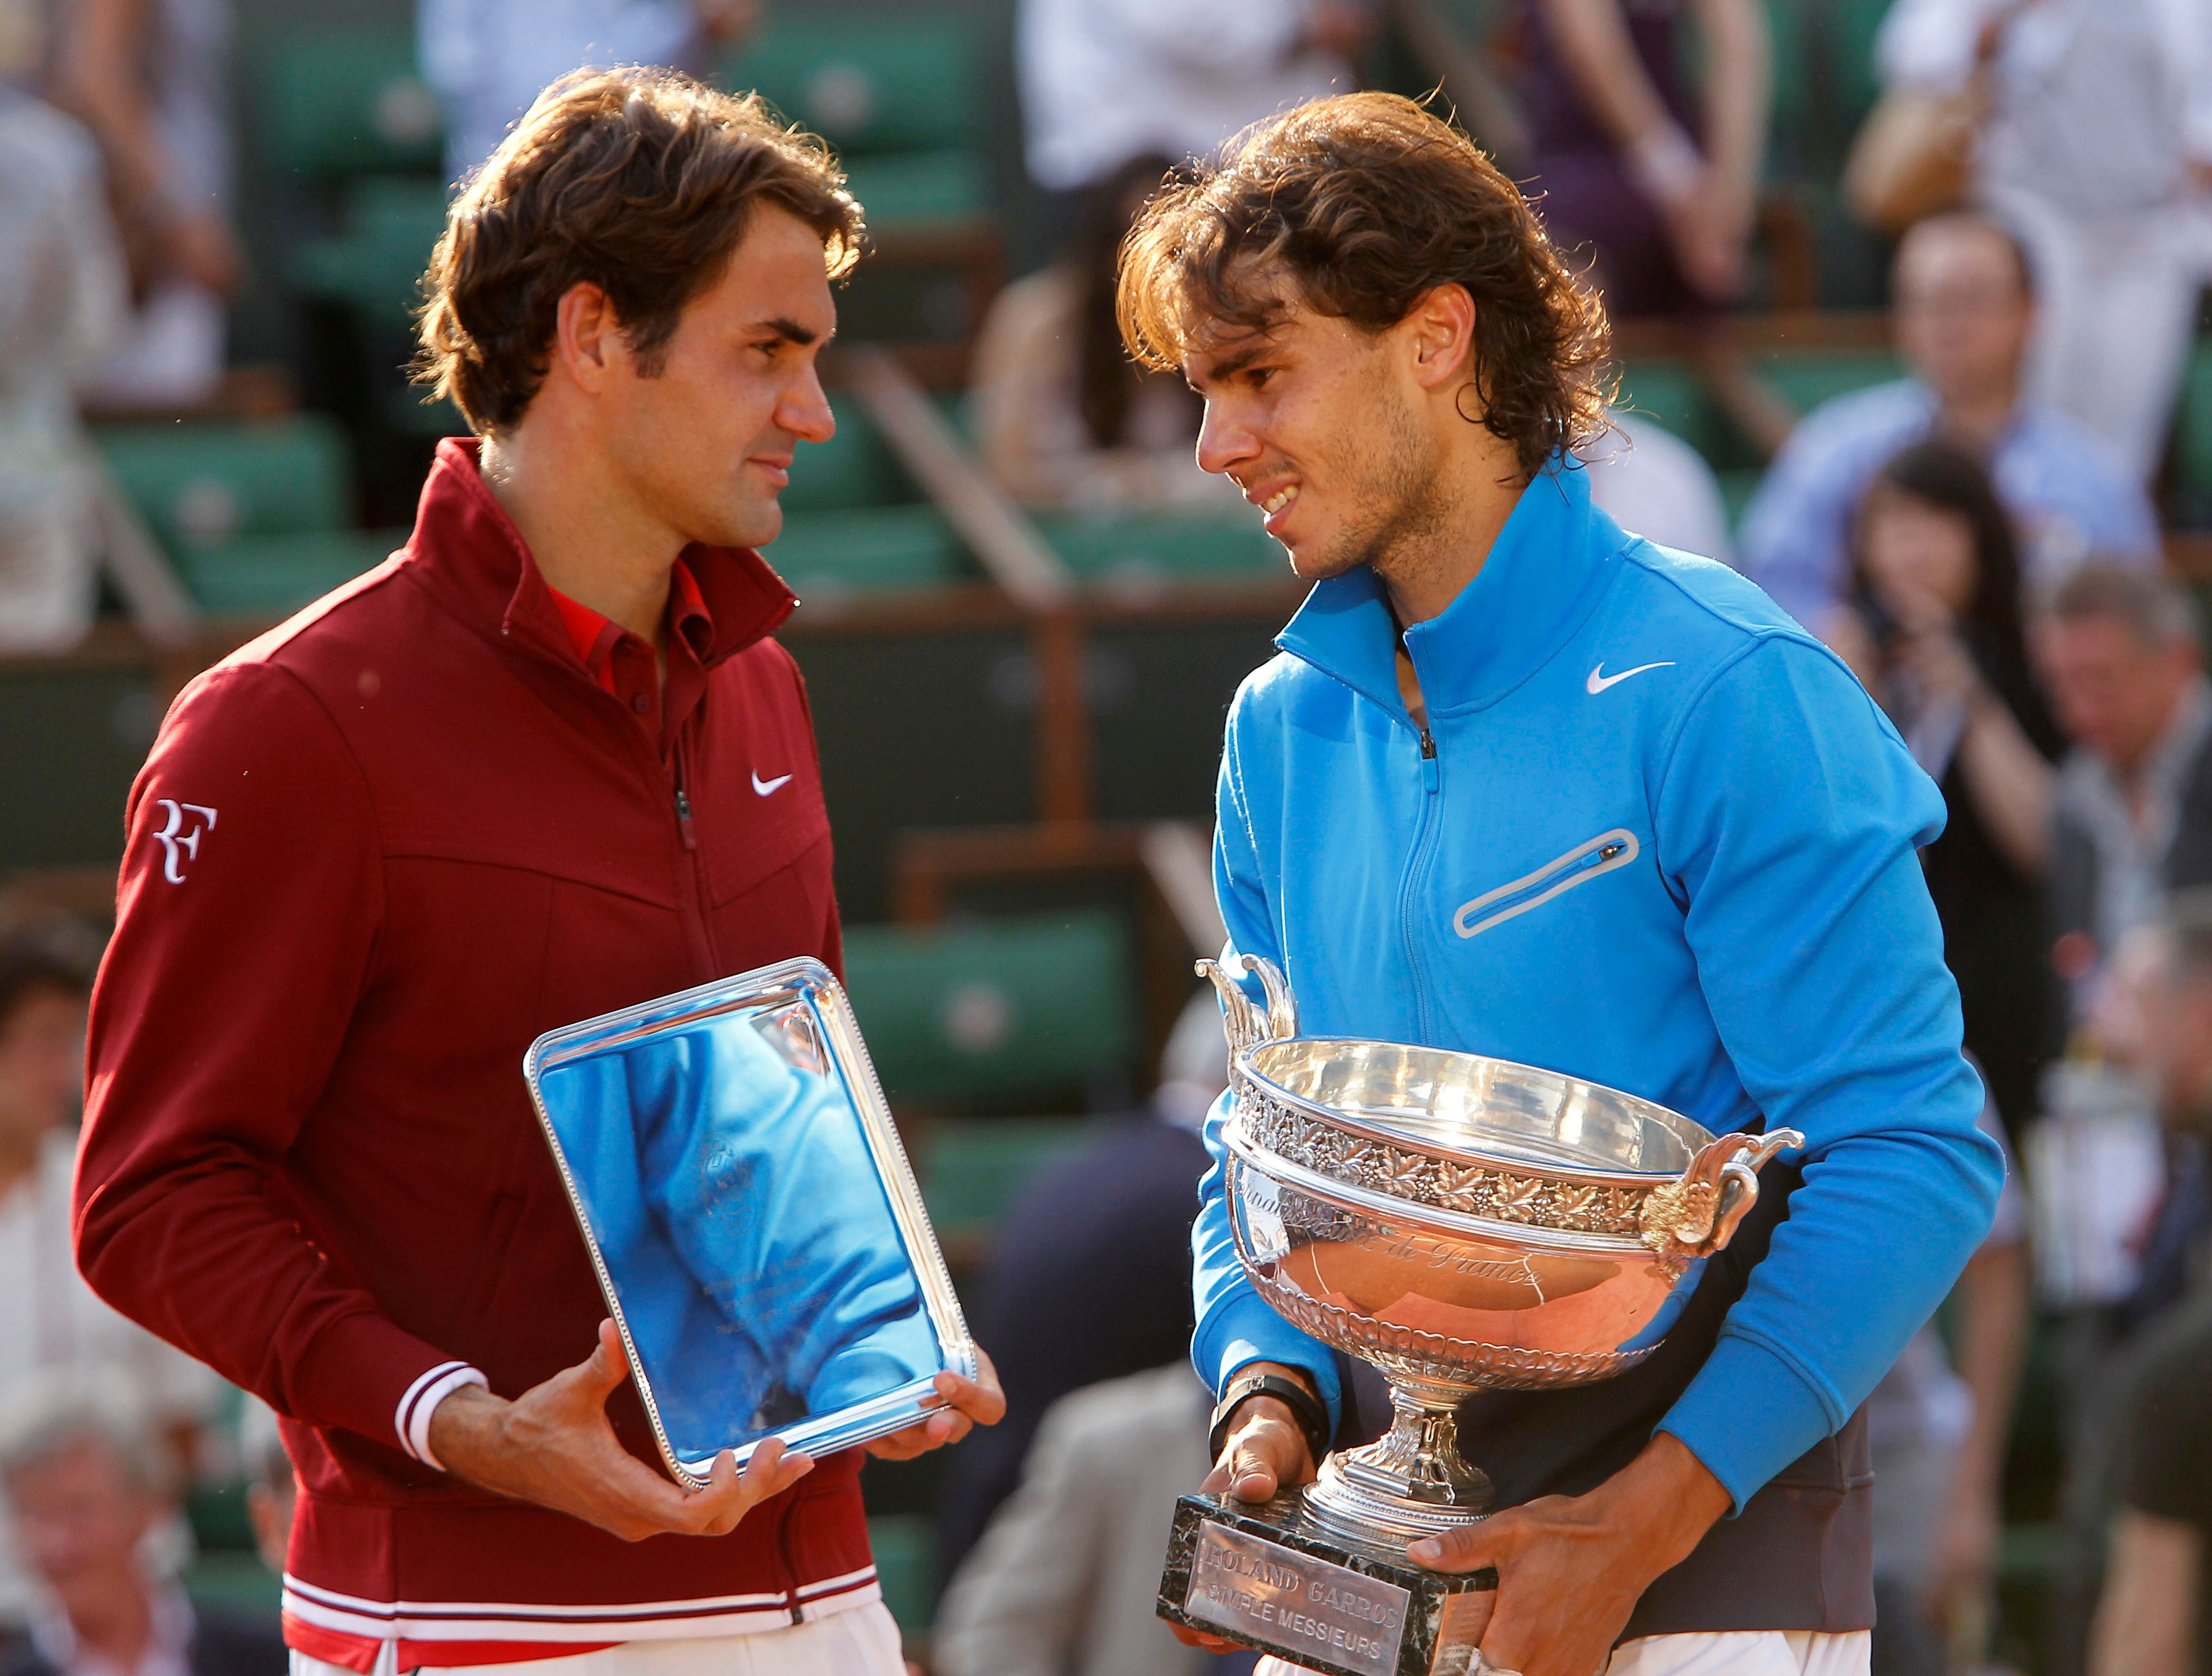 La tranquillità Organizzare Ipocrisia  Roger Federer pays tribute to 'greatest rival' Rafael Nadal after French  Open victory ties Grand Slam hauls | The Independent